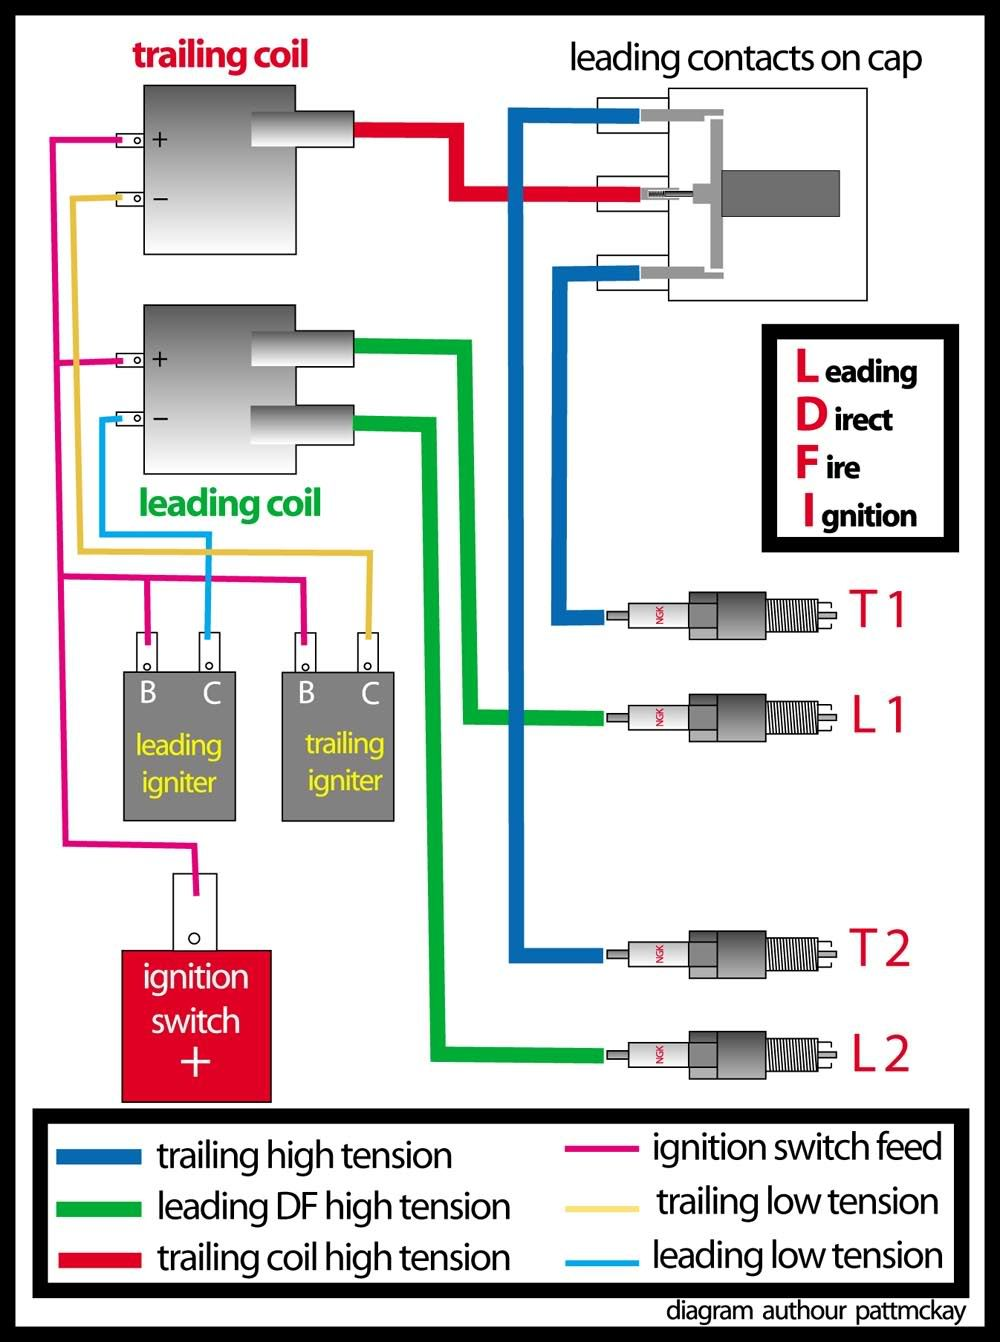 f51a9f8accfbb2accd16cb3edbec5003 here is a simple wiring diagram for a single leading direct fire fc3s wiring diagram at reclaimingppi.co